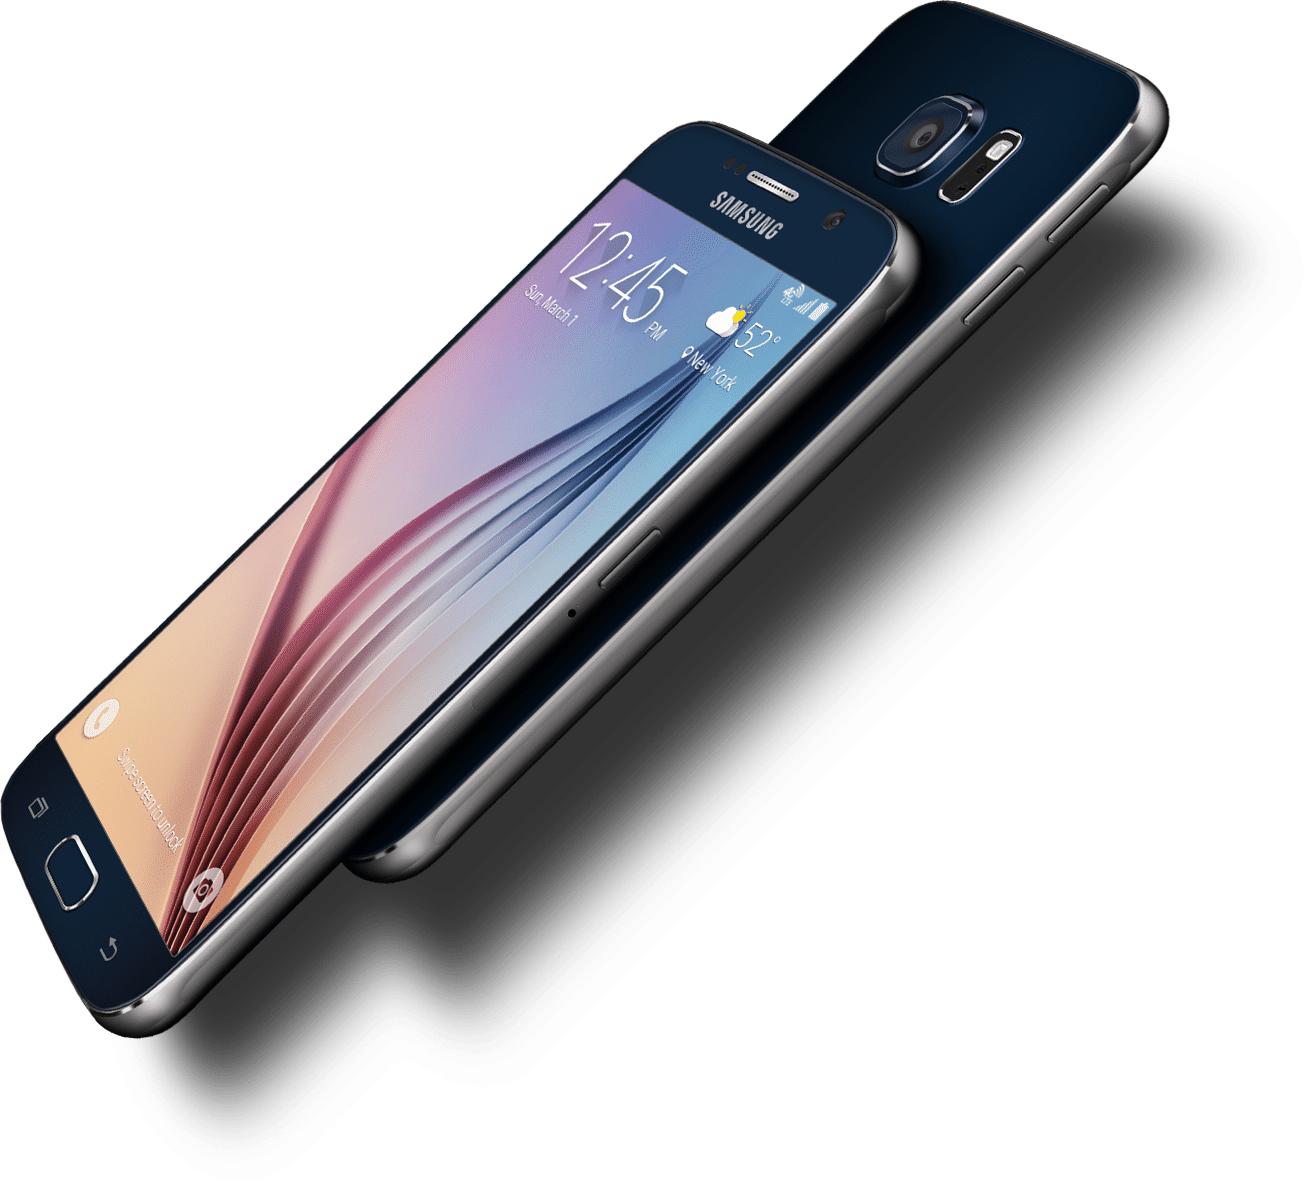 Samsung-Galaxy-S6-official-images (5)